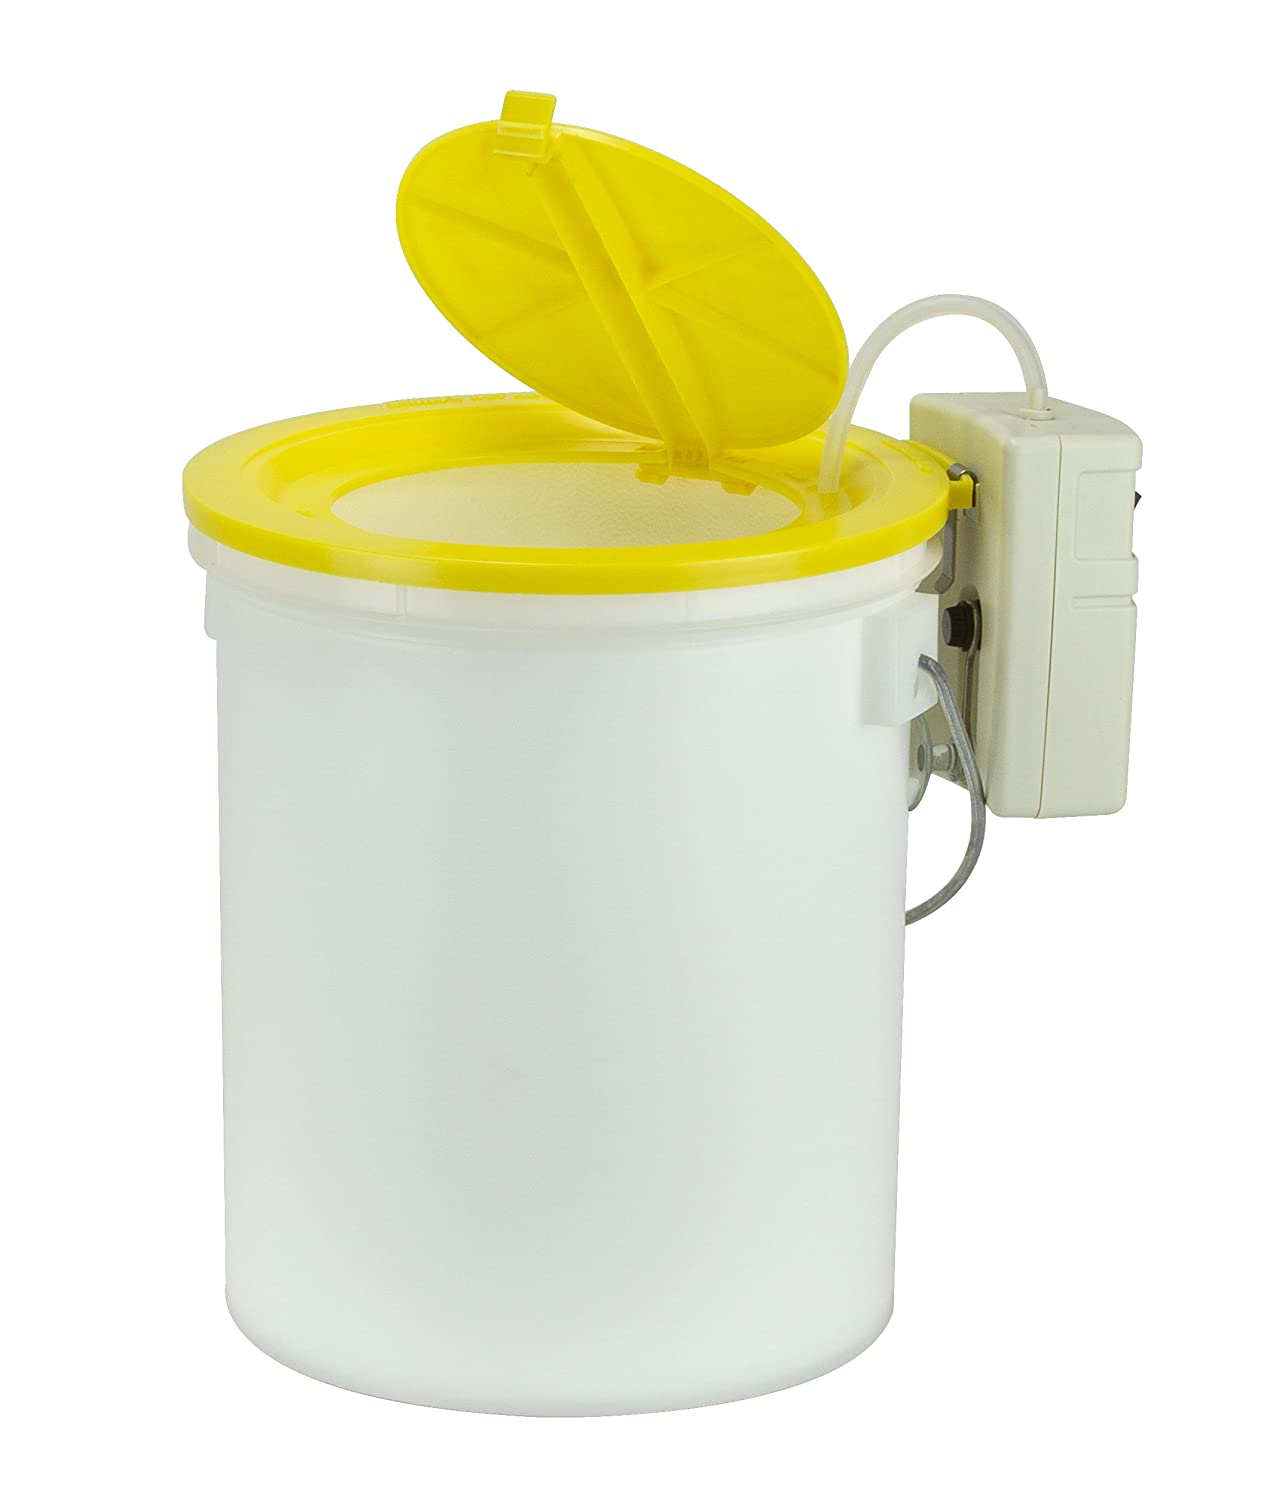 Frabill Insulated Aerated Minnow Bucket Foam Lined with Aerator, 8-Quart